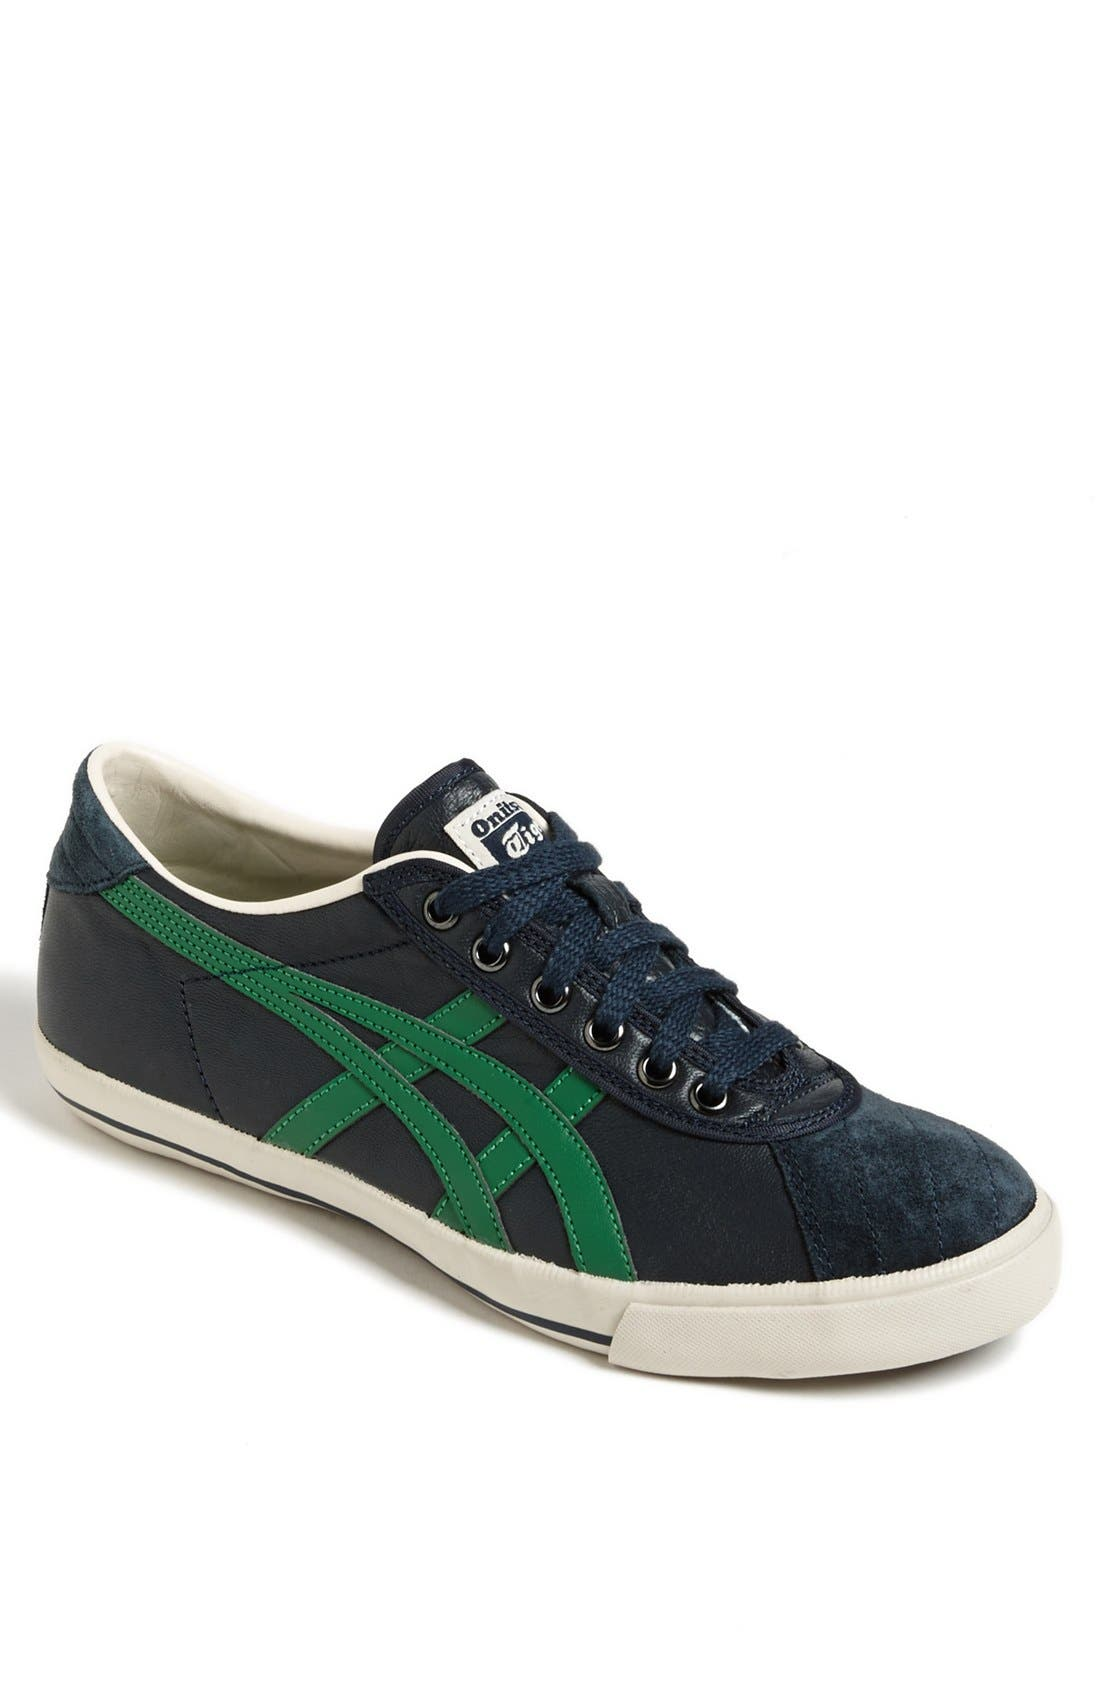 Alternate Image 1 Selected - Onitsuka Tiger™ 'Rotation 77' Sneaker (Men)